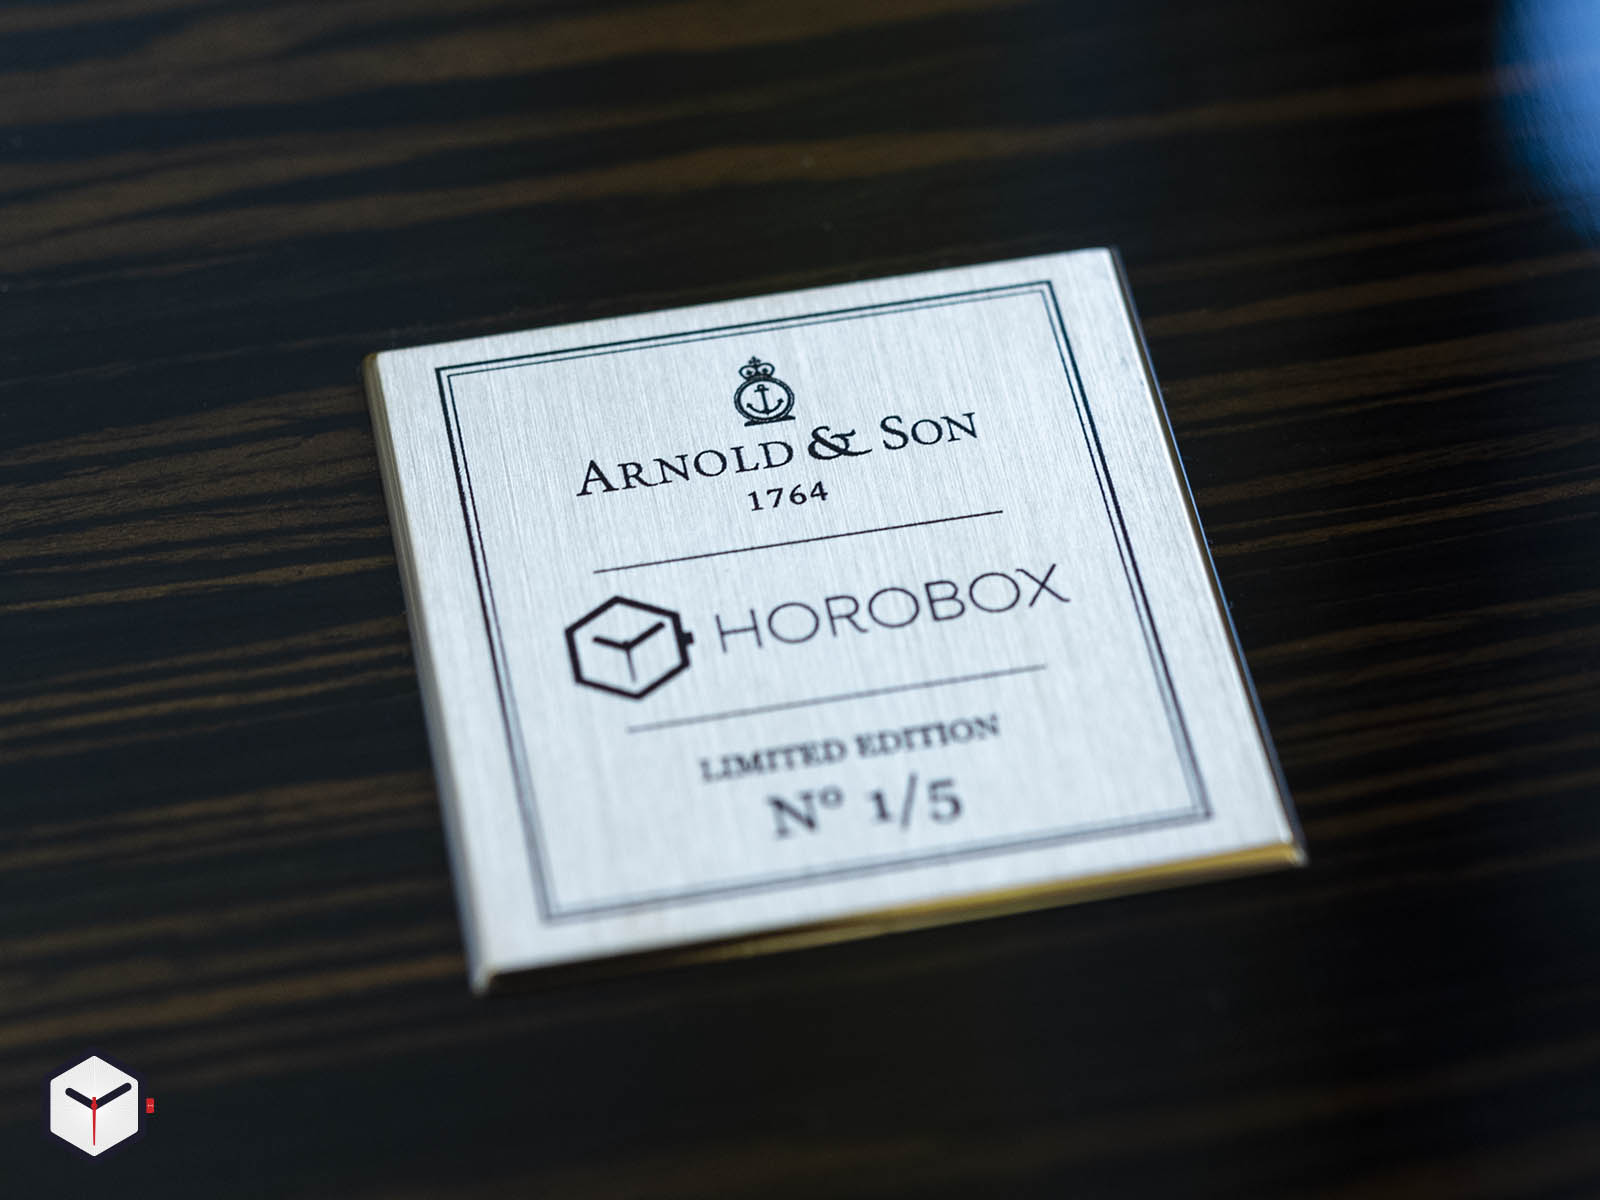 arnold-son-globetrotter-horobox-limited-edition-8.jpg